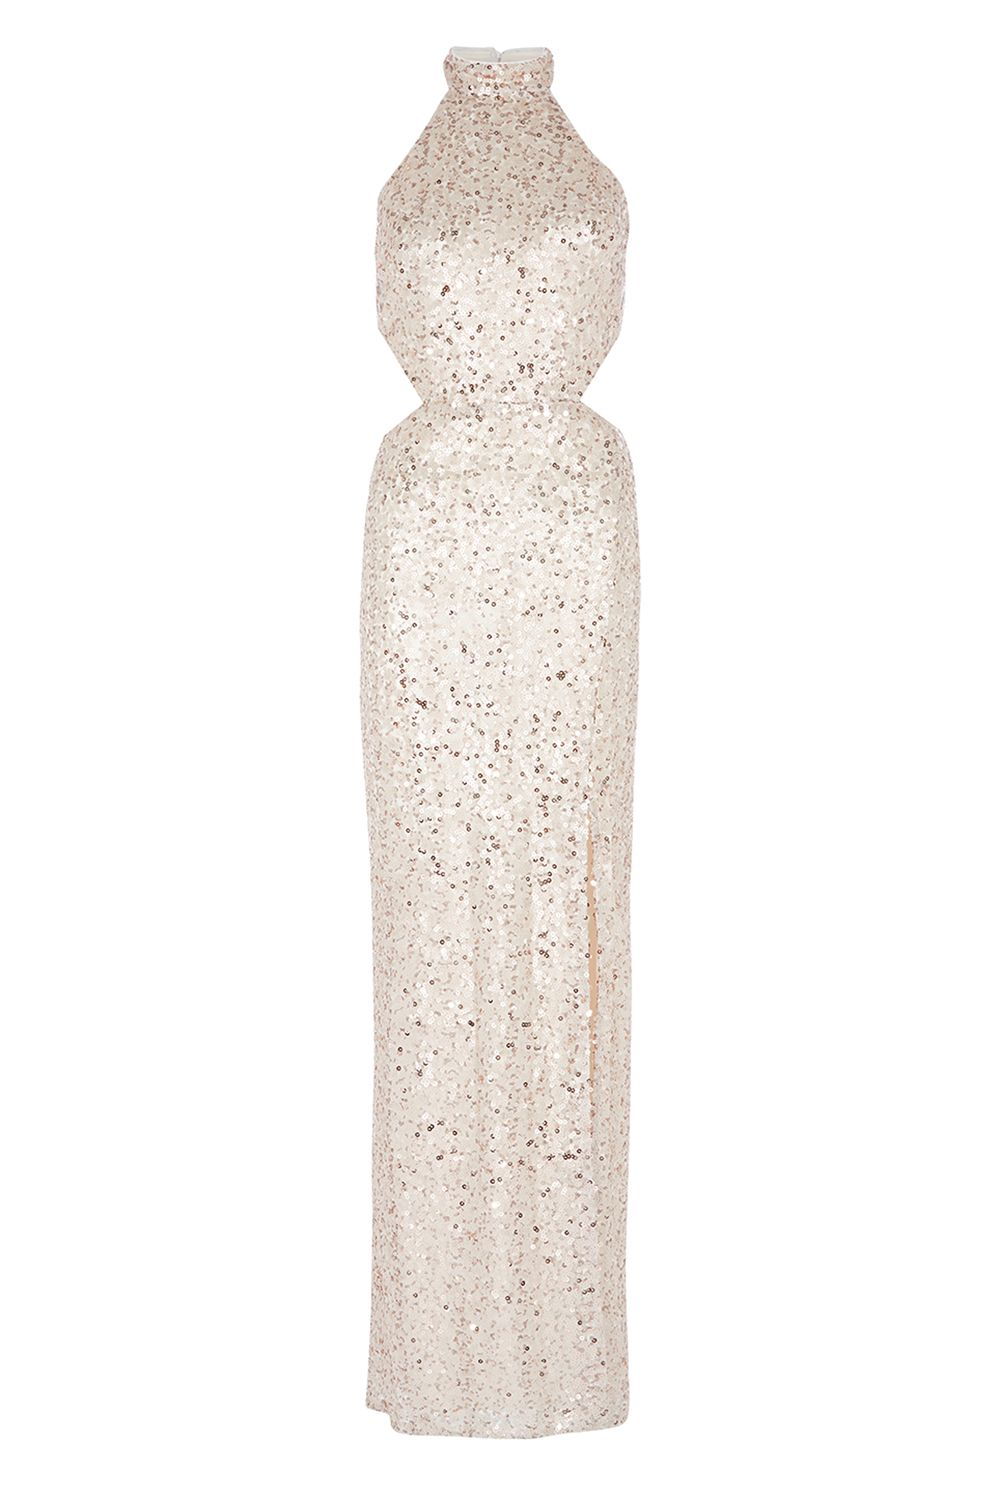 Coast Ariel Sequin Maxi Dress, Gold Silverlic